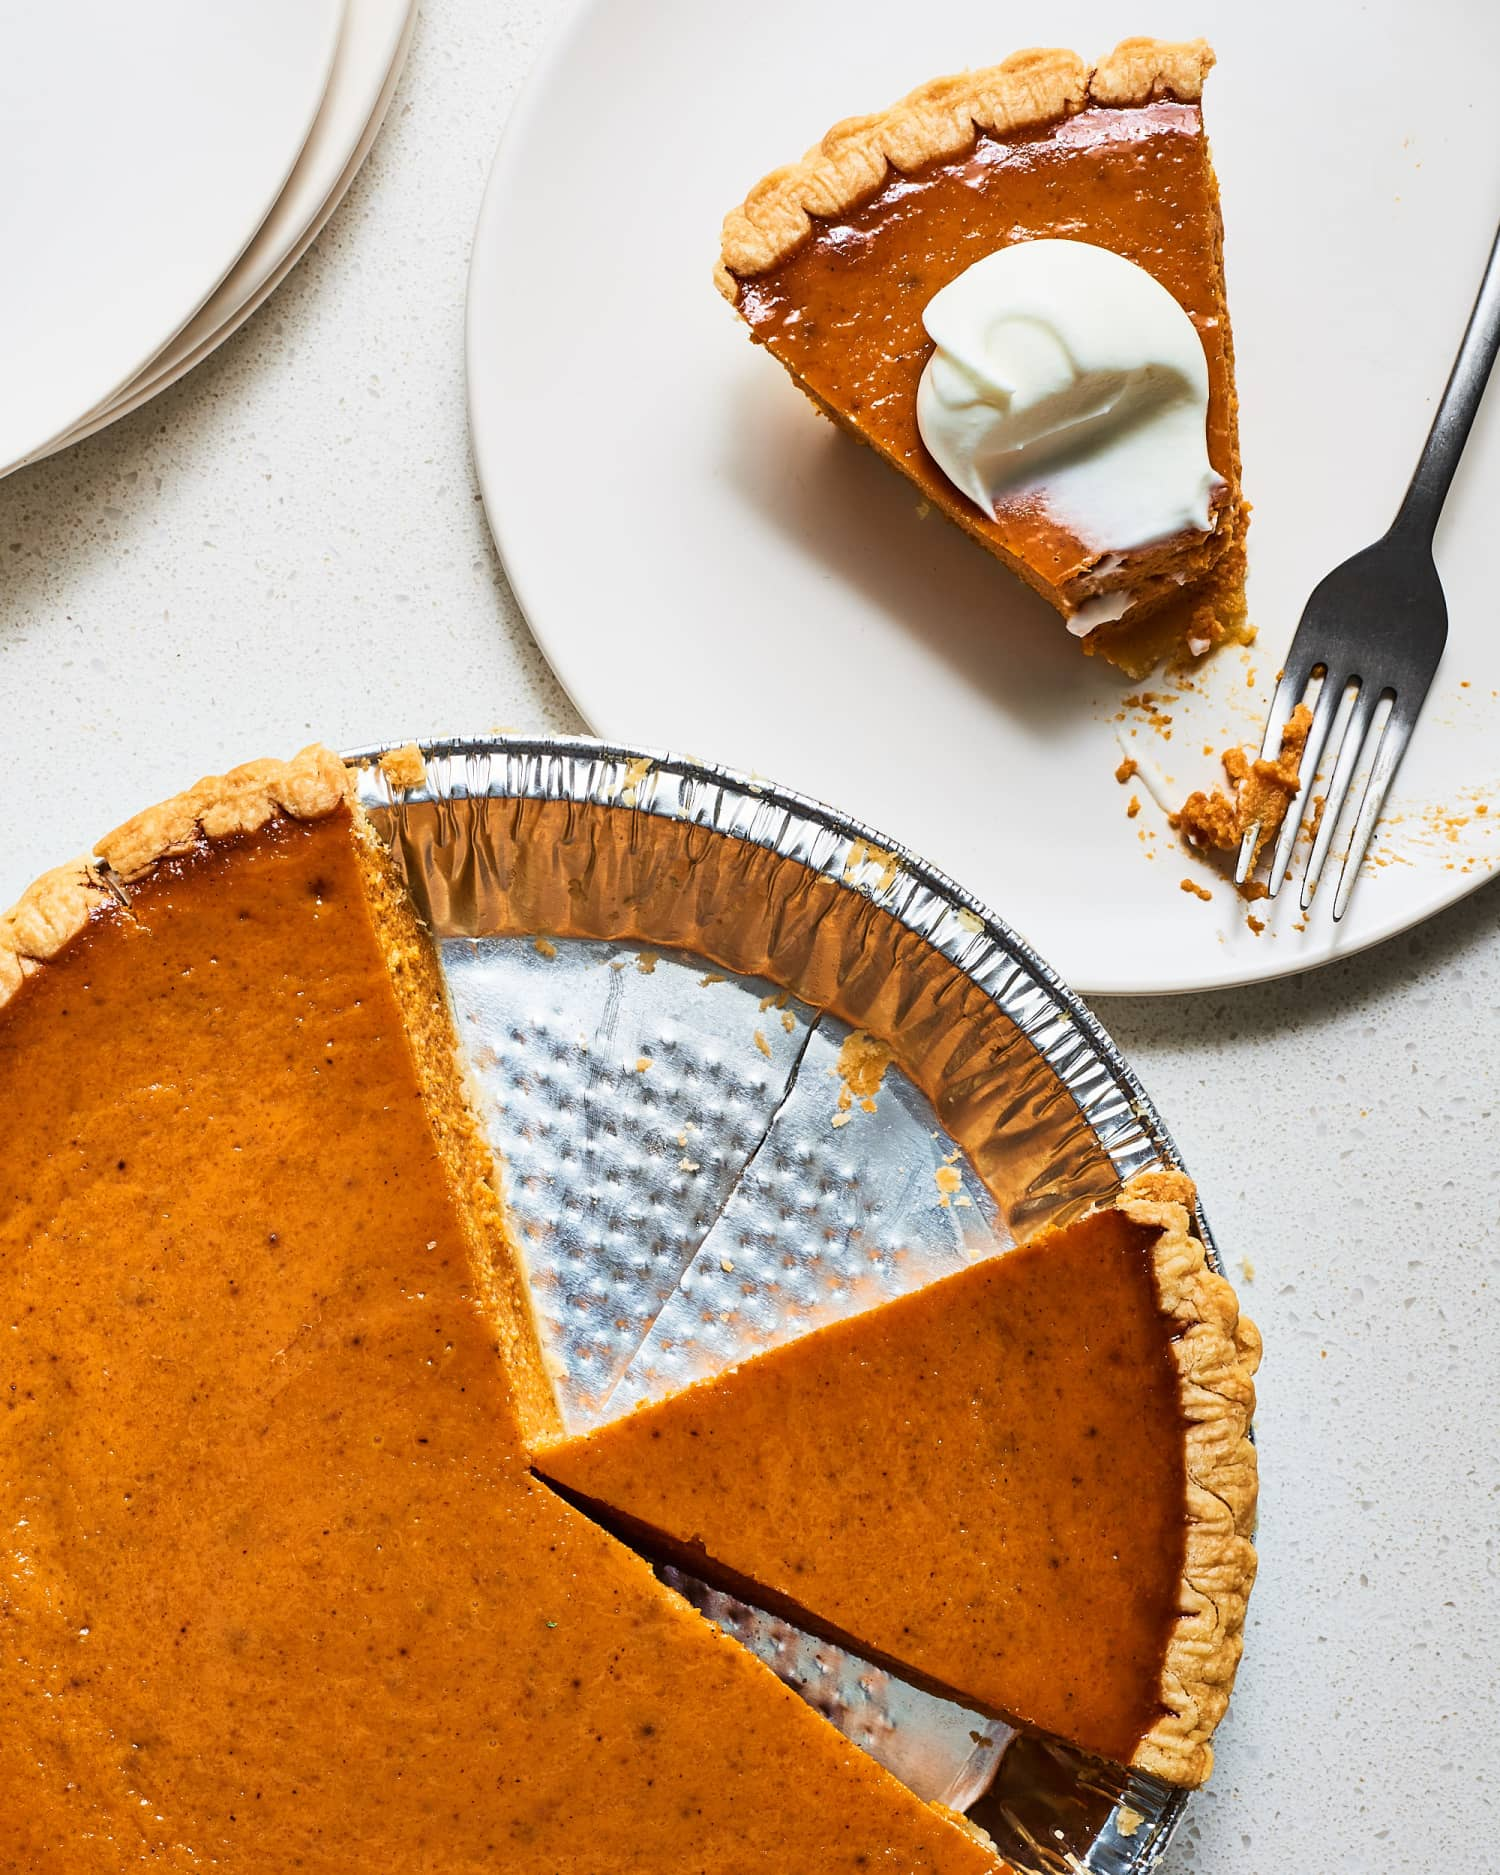 30 Side Dishes And Desserts To Try: 30 Essential Thanksgiving Recipes To Try This Year